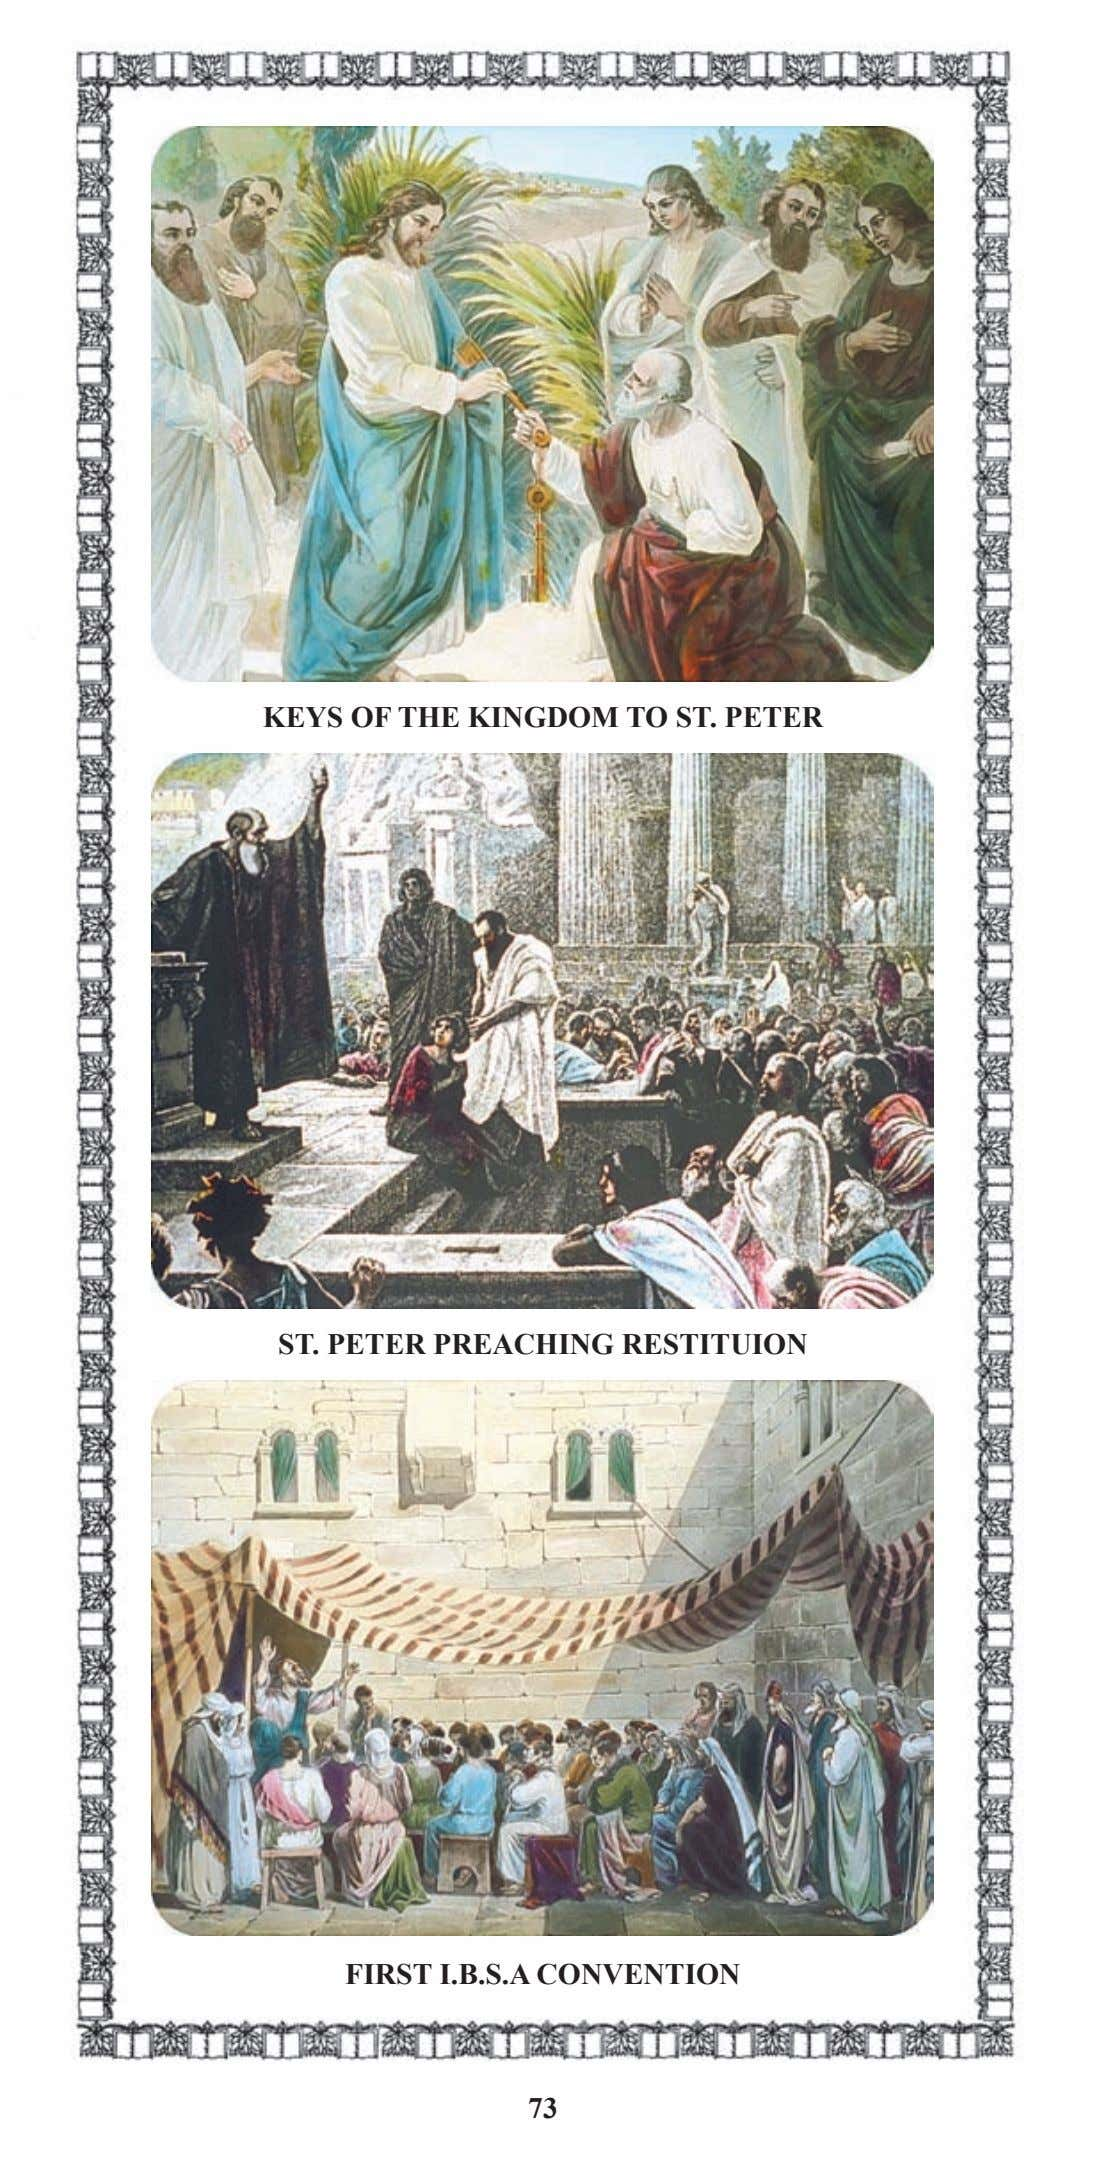 KEYS OF THE KINGDOM TO ST. PETER ST. PETER PREACHING RESTITUION FIRST I.B.S.A CONVENTION 73